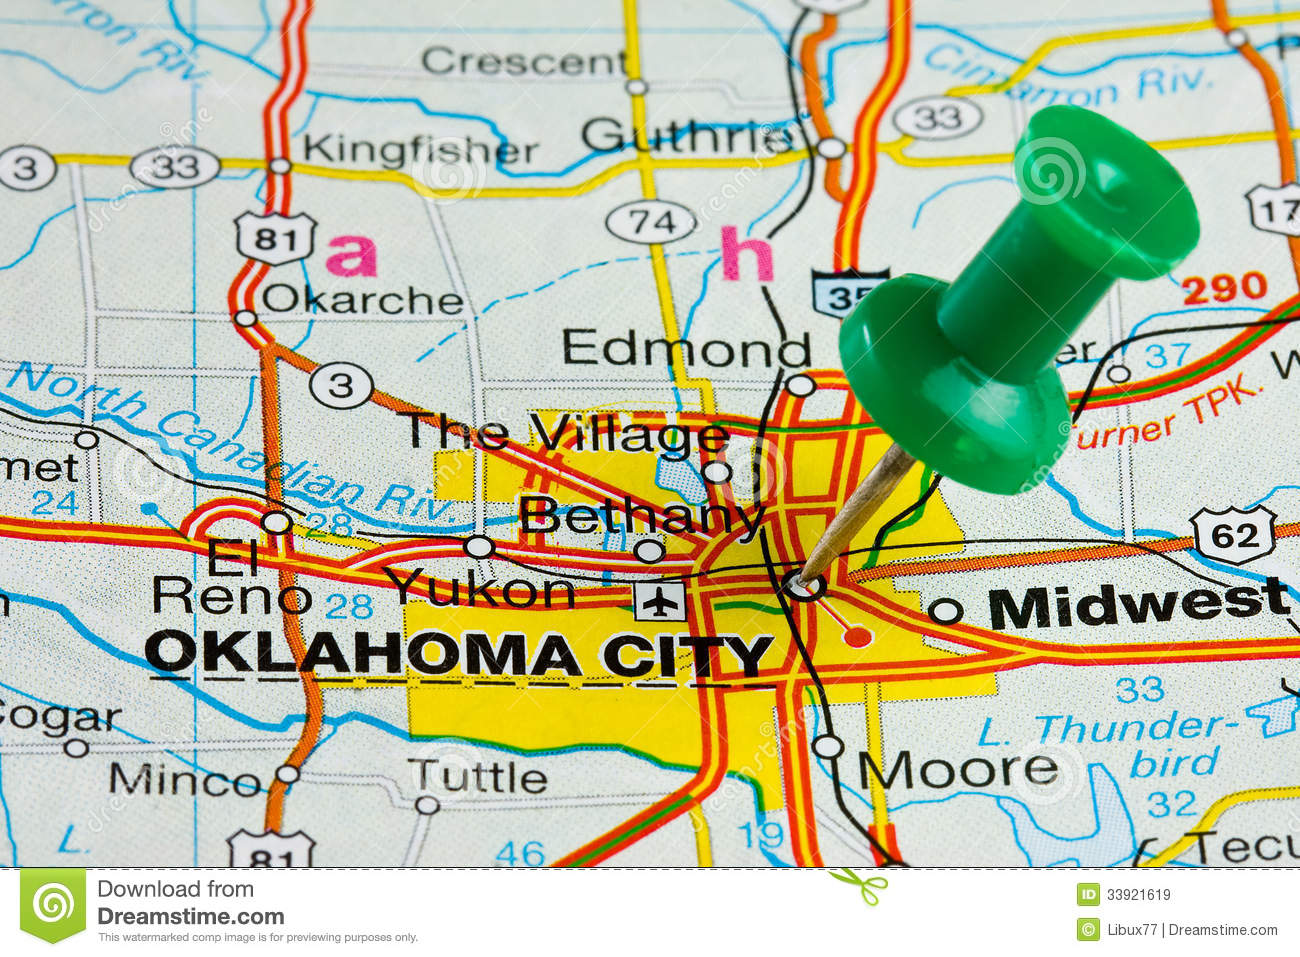 Pushpin In Oklahoma City Map Stock Image - Image of streetmap ... on